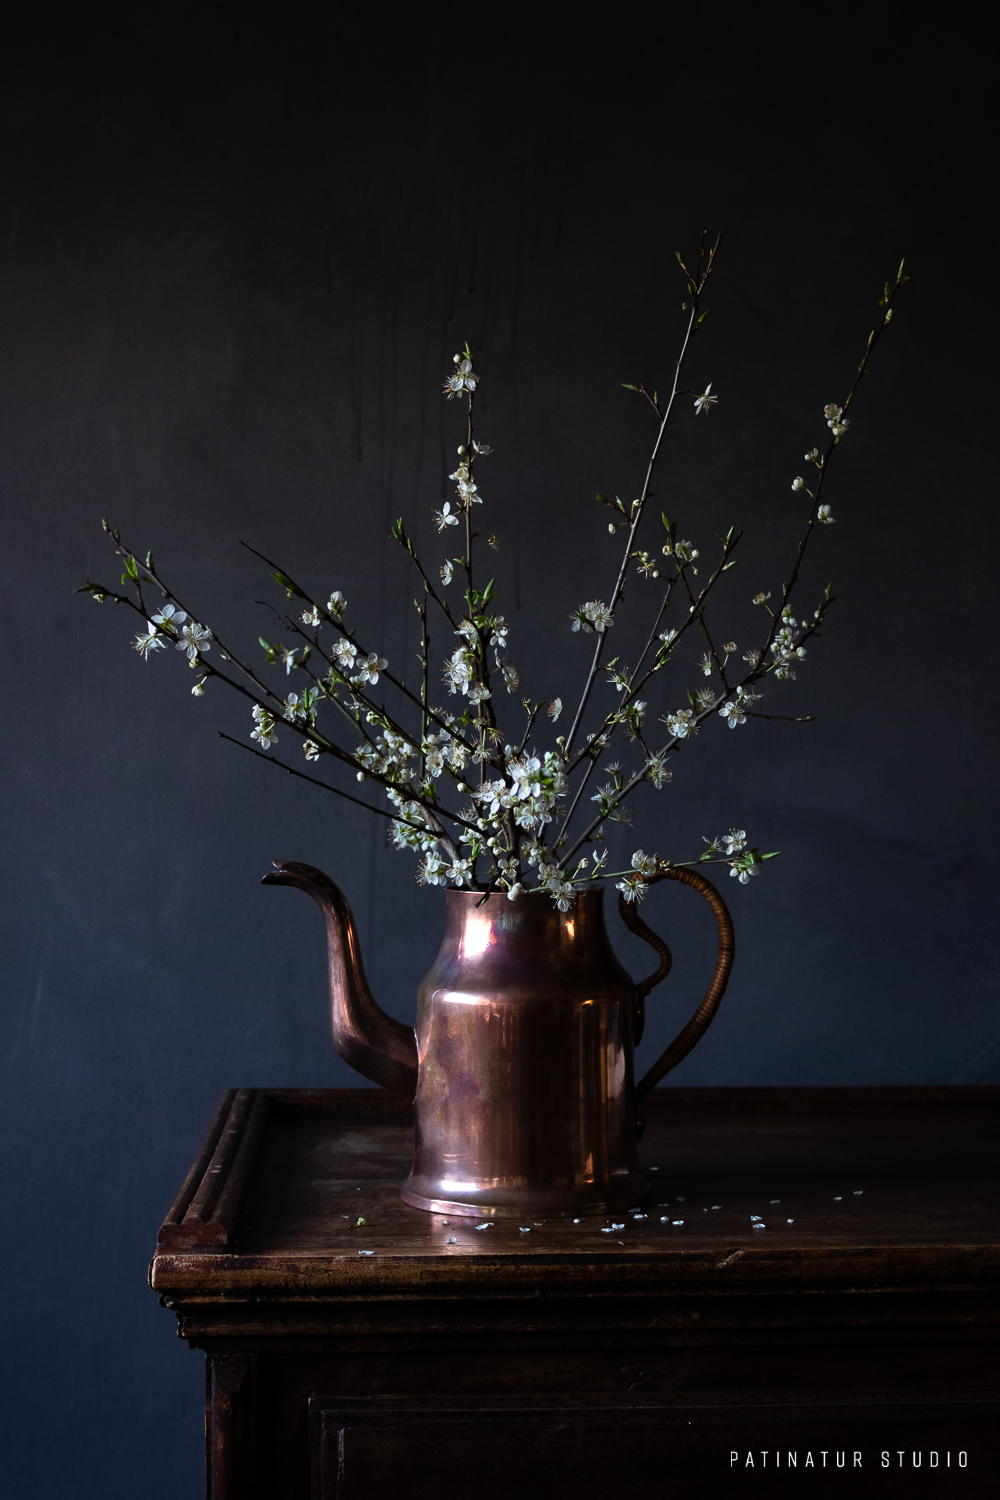 Photo art | Dark and moody still life with mirabelle blossoms in copper jug